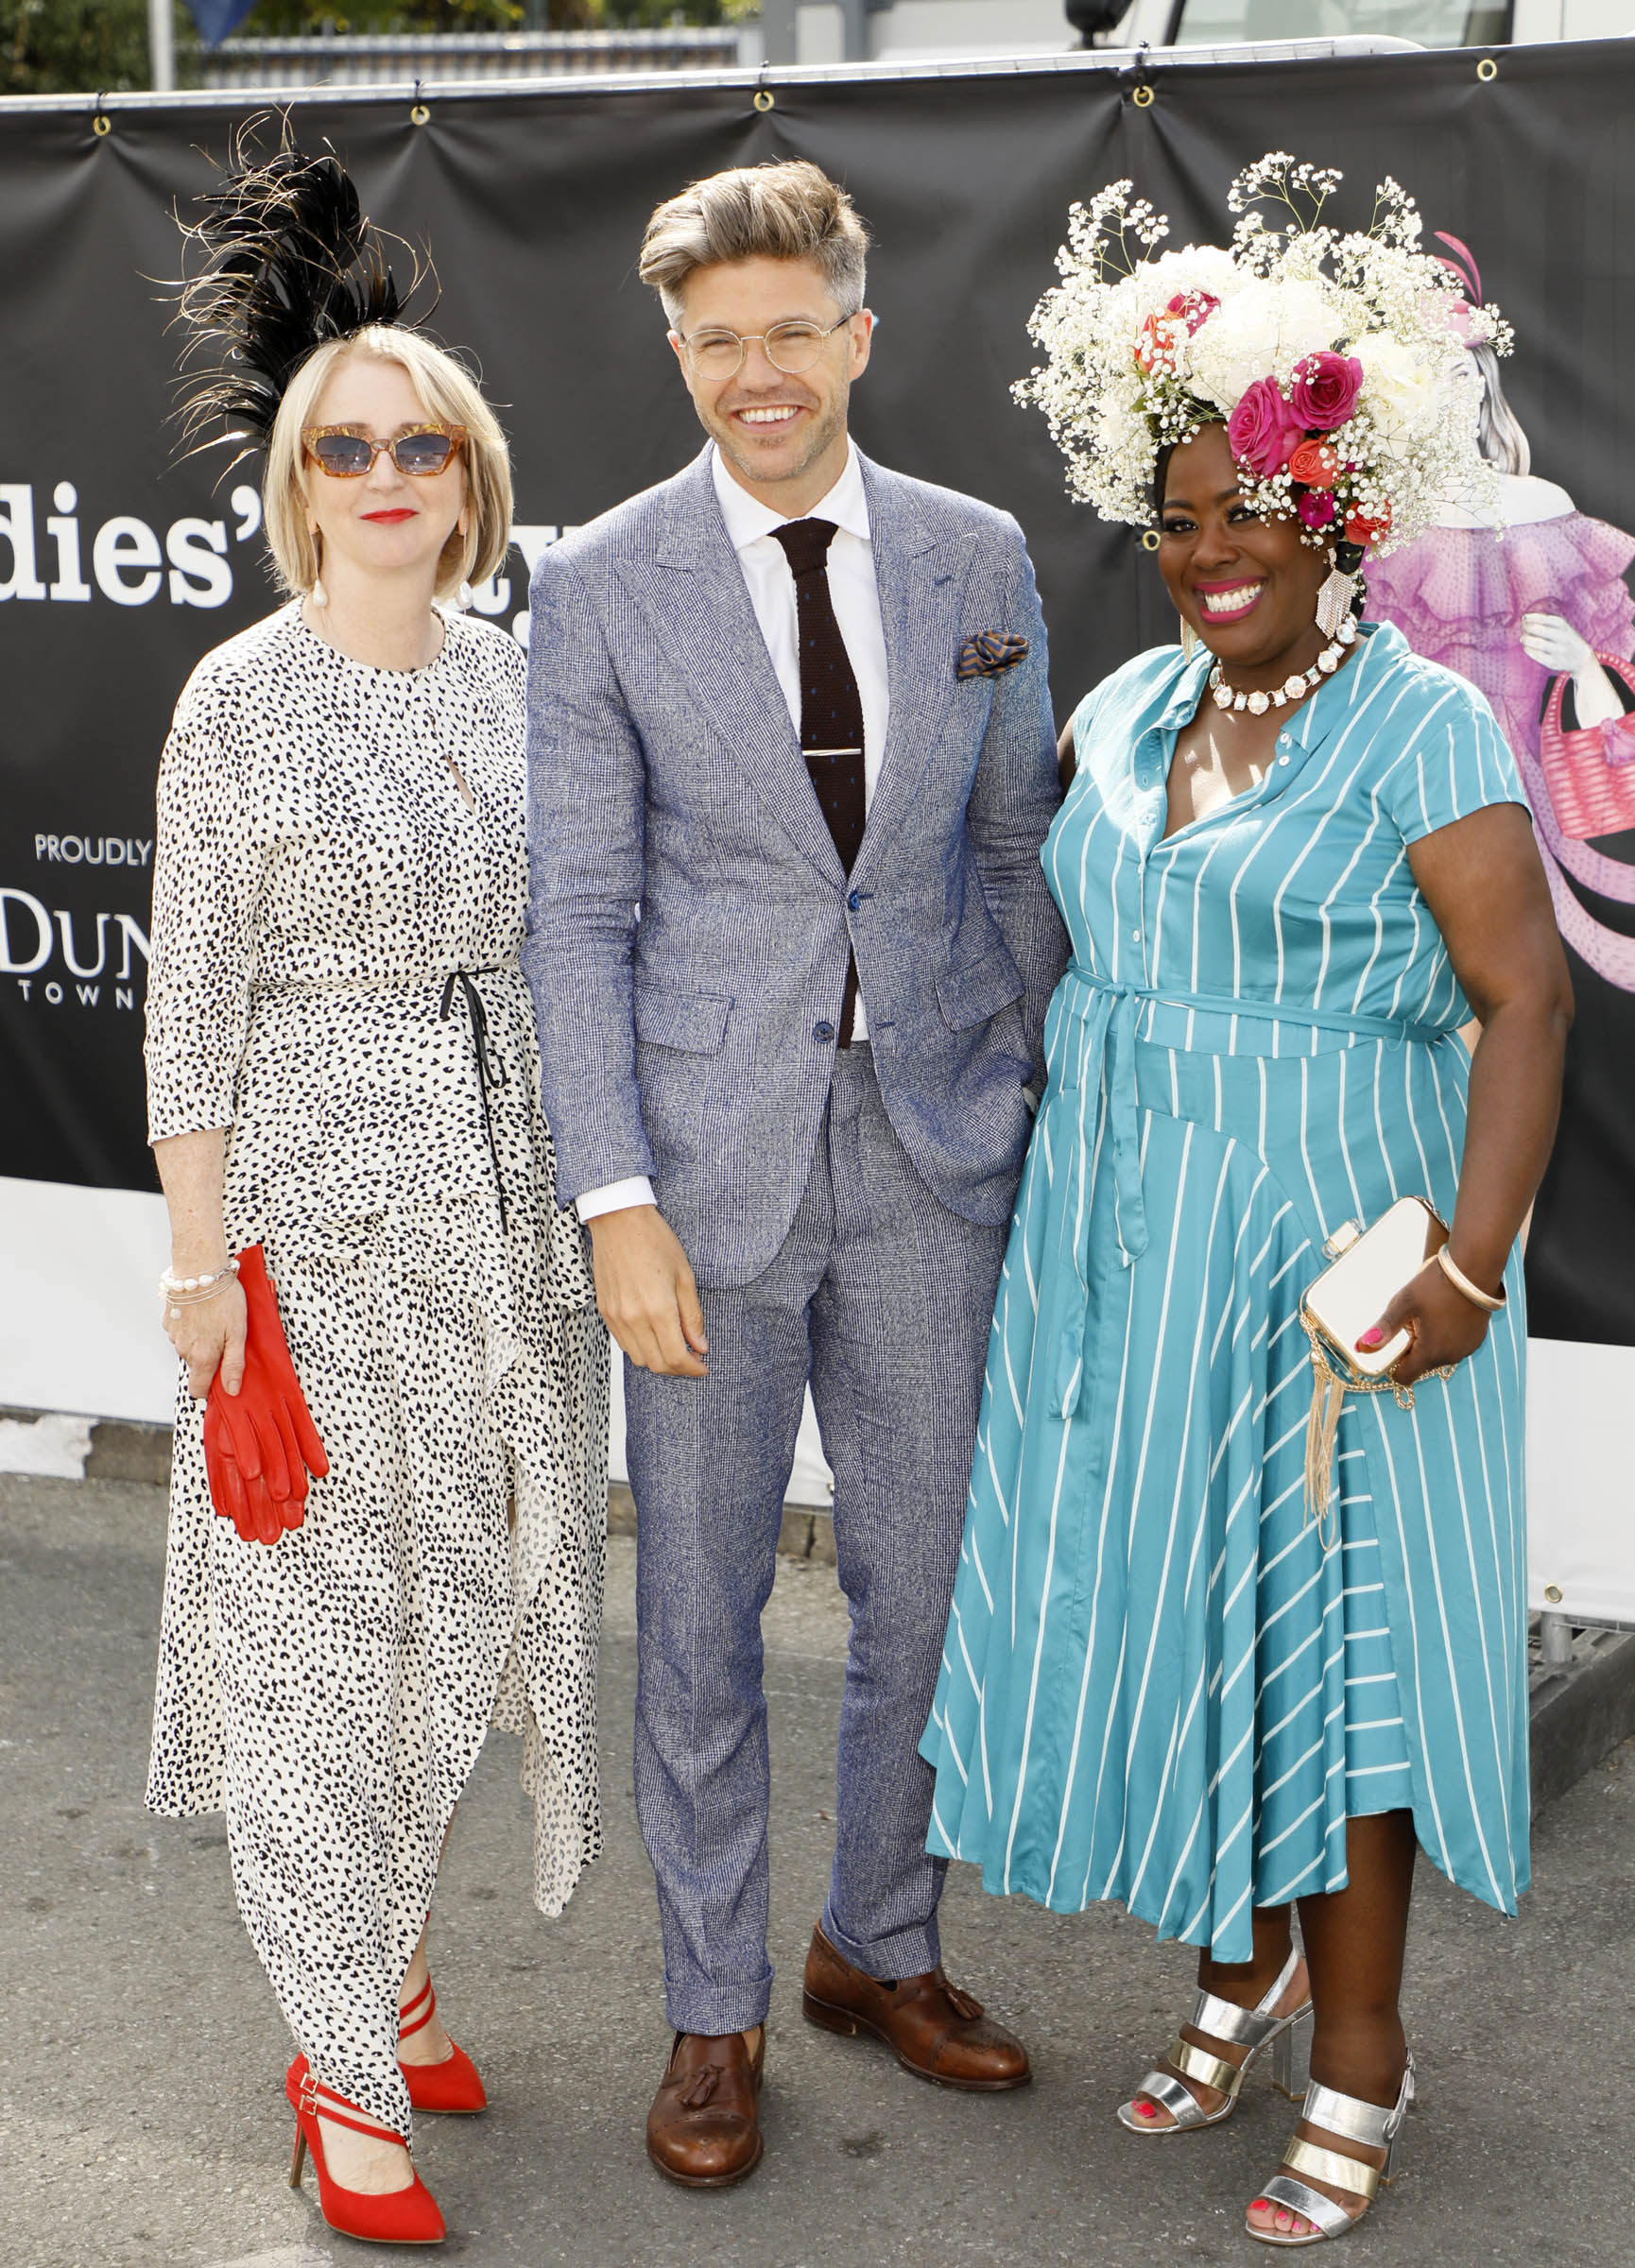 Bairbre Power, Darren Kennedy and Nadine Reid at the Dundrum Town Centre Ladies' Day at the Dublin Horse Show in the RDS. Photo: Kieran Harnett